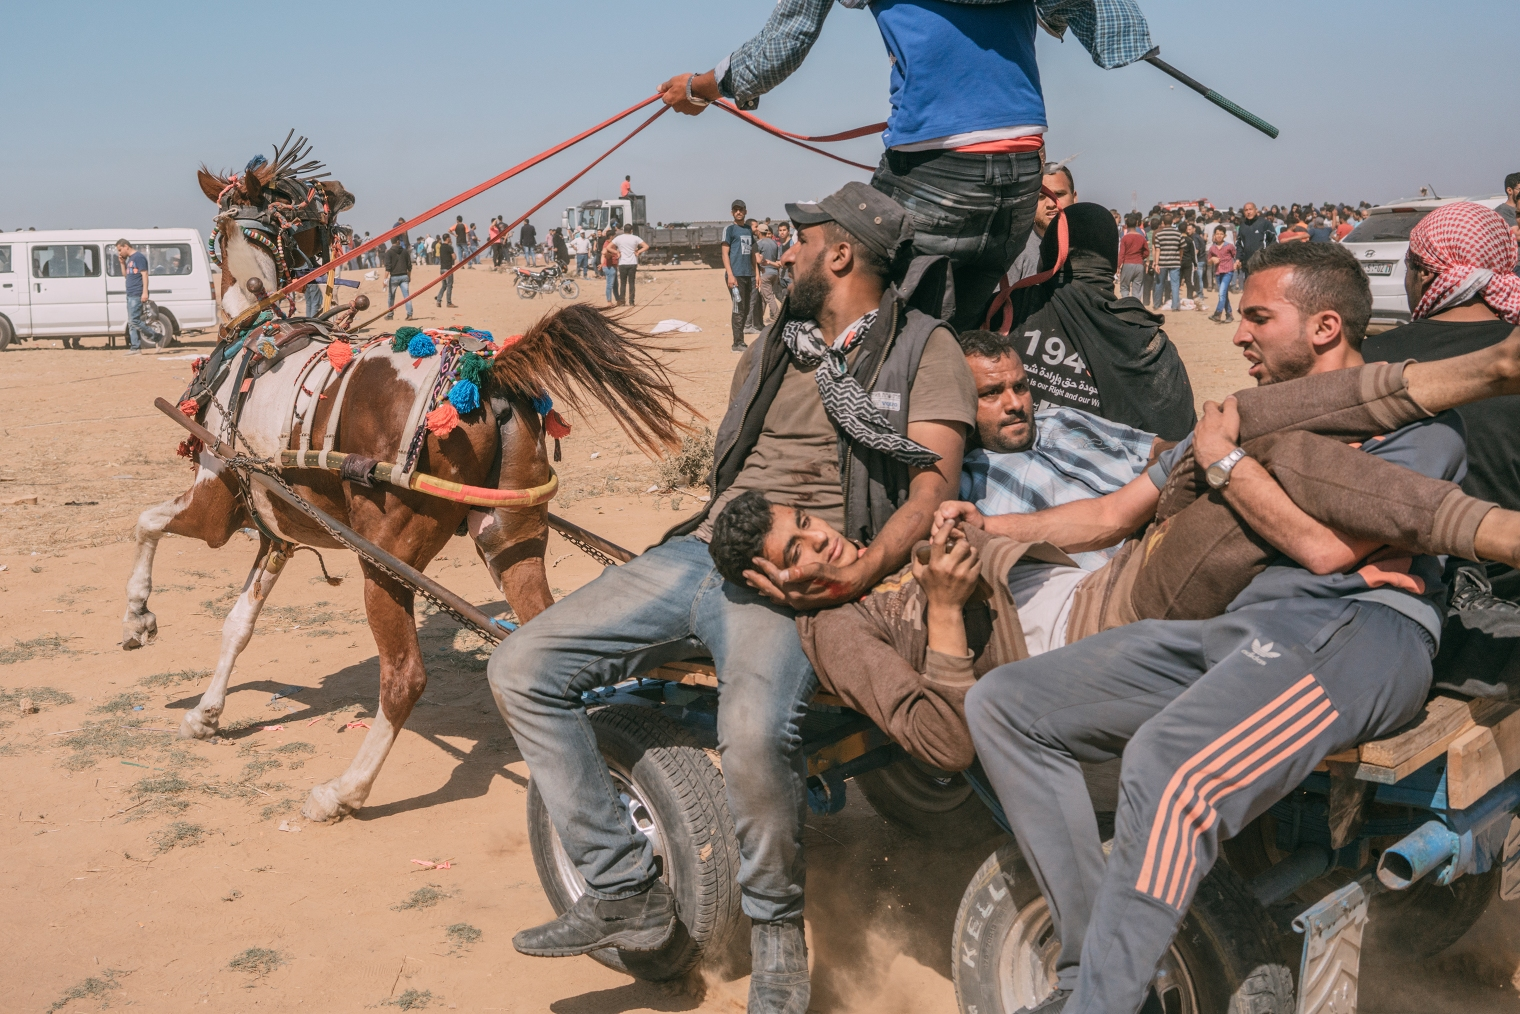 As the U.S. opened a new embassy in Jerusalem on May 14, violence erupted just miles away at the Gaza border, where Israeli soldiers clashed with Palestinian protesters like this injured man, who was evacuated by horse cart.